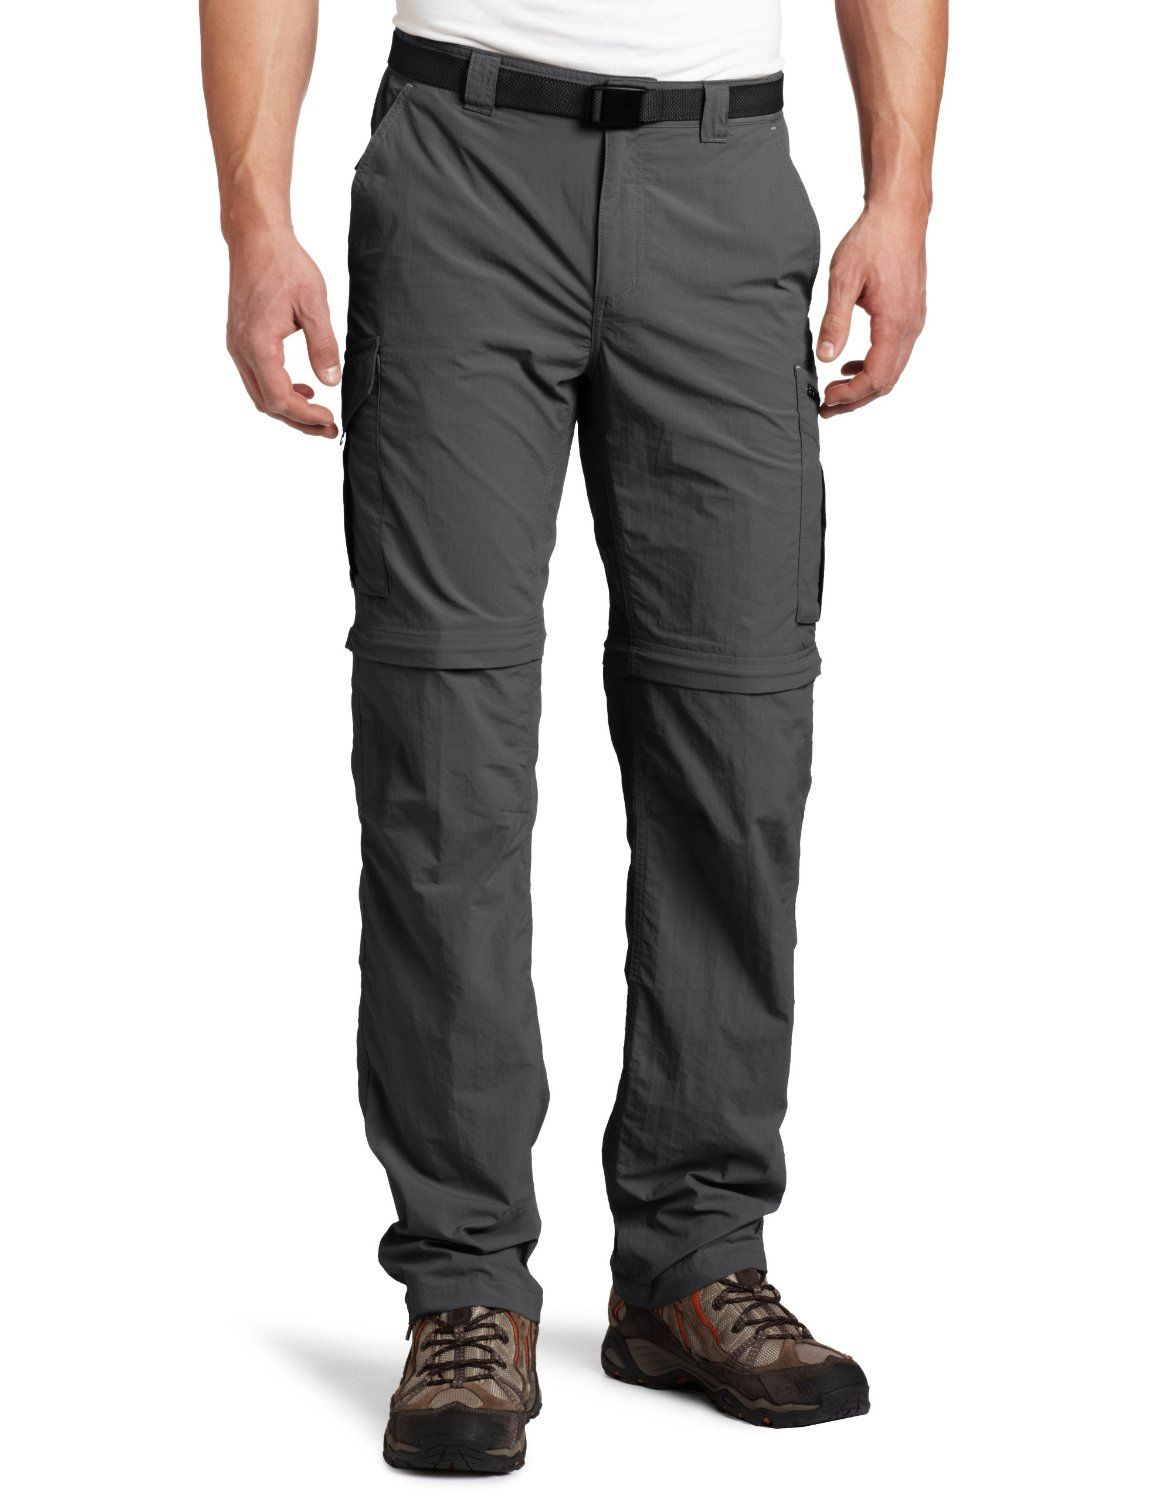 d4dd13f9 Columbia Men's Silver Ridge Convertible Pant, Grill, 42 x 32 -- Additional  details at the pin item shown here, click it : Camping clothes